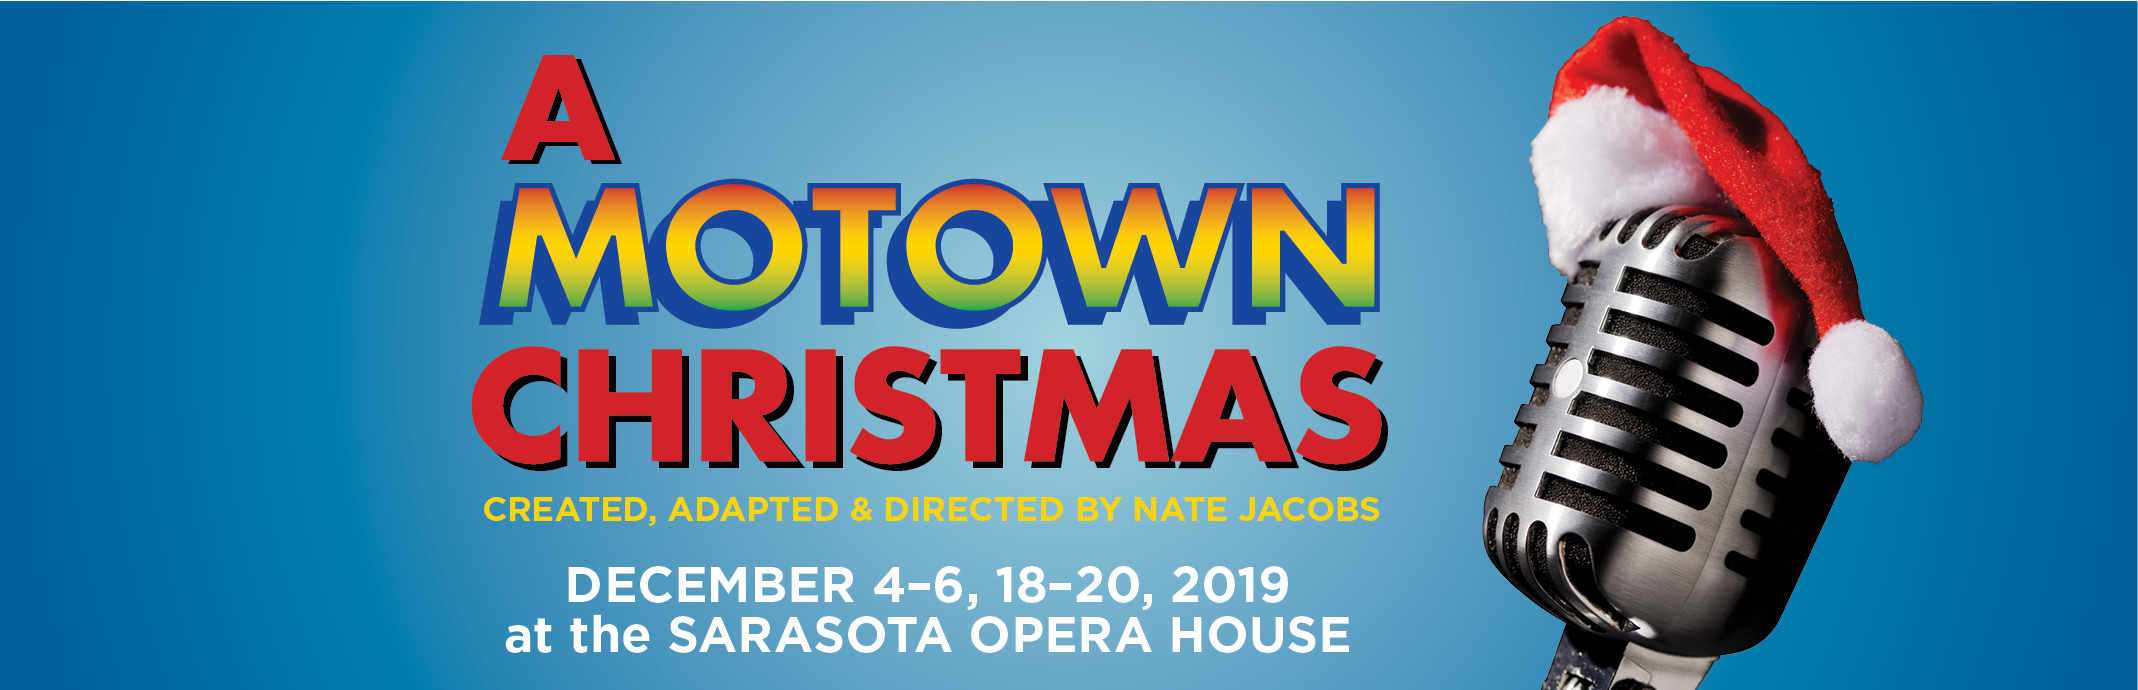 A Motown Christmas; Created, Adapted, and Directed by Nate Jacobs; December 4-6, 18-20, 2019 at the Sarasota Opera House